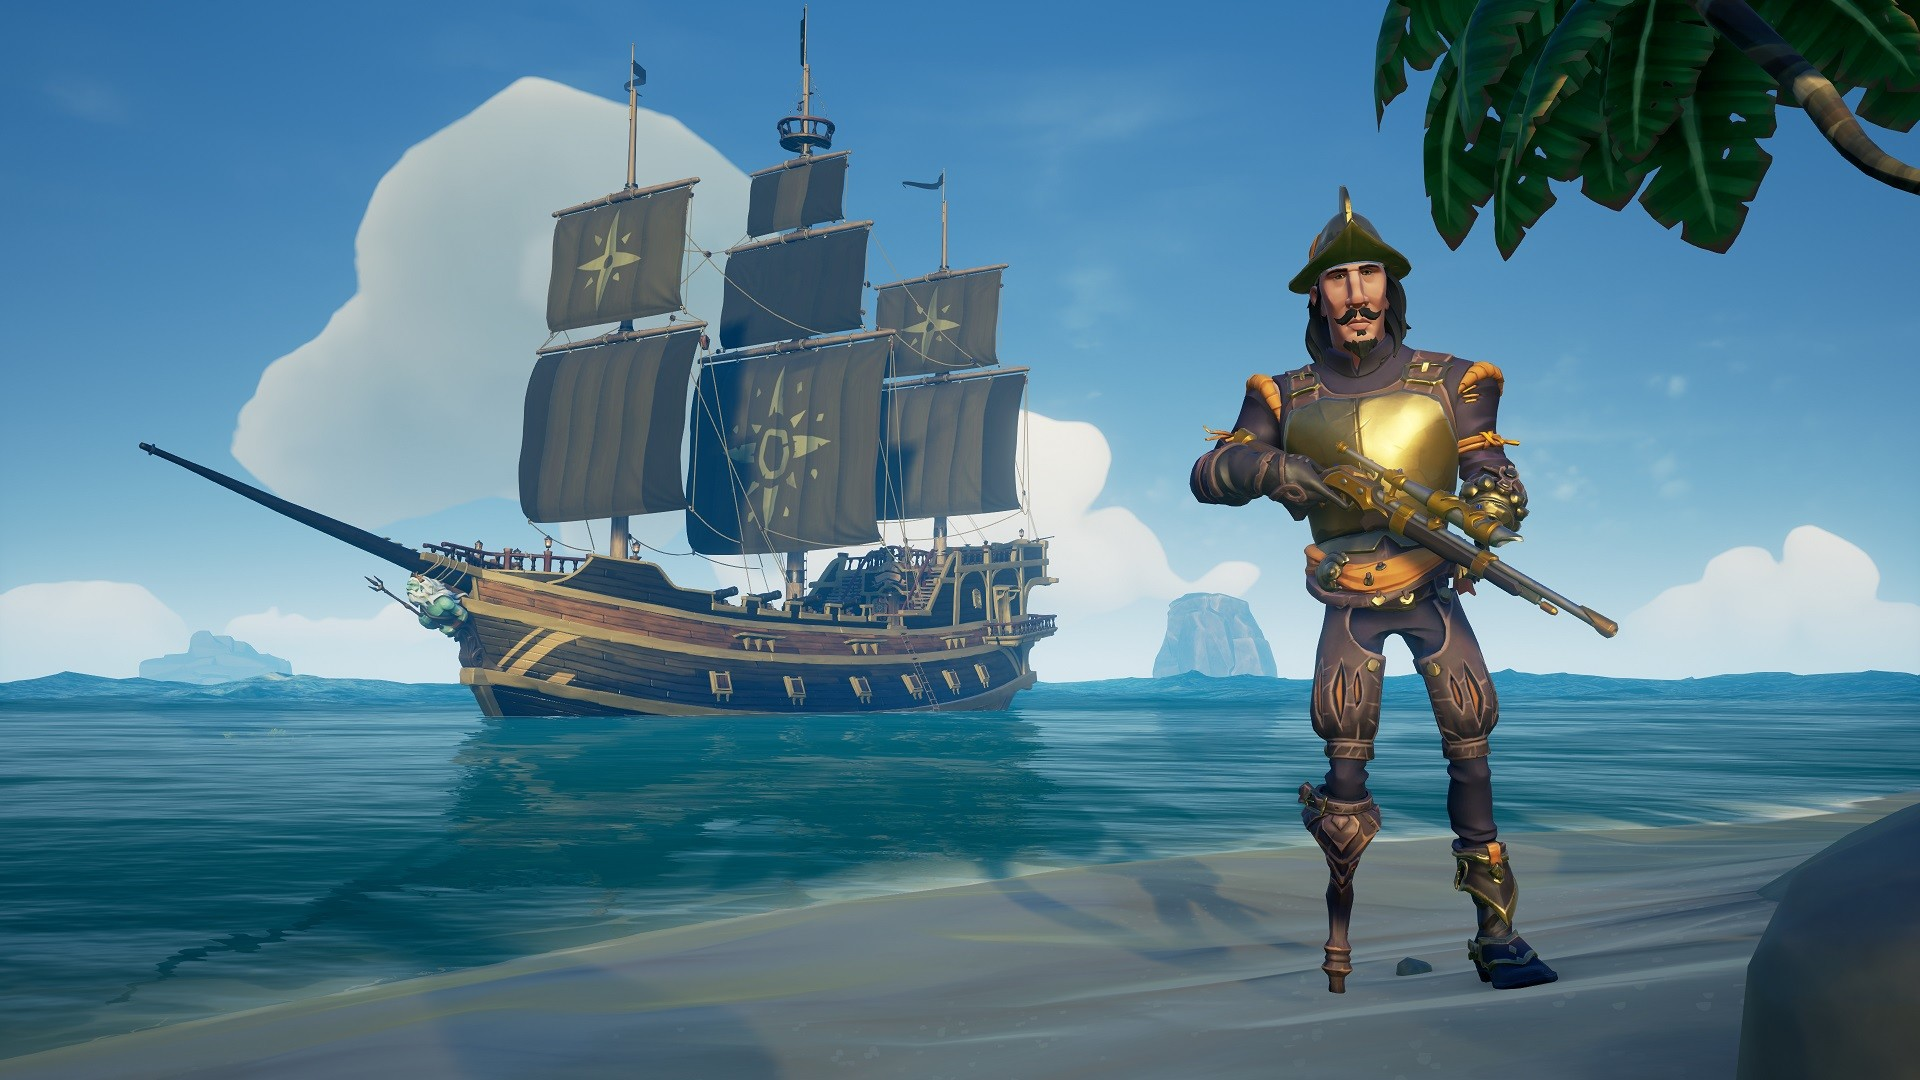 Sea of Thieves Adds New Cosmetics, Month Anniversary Gift